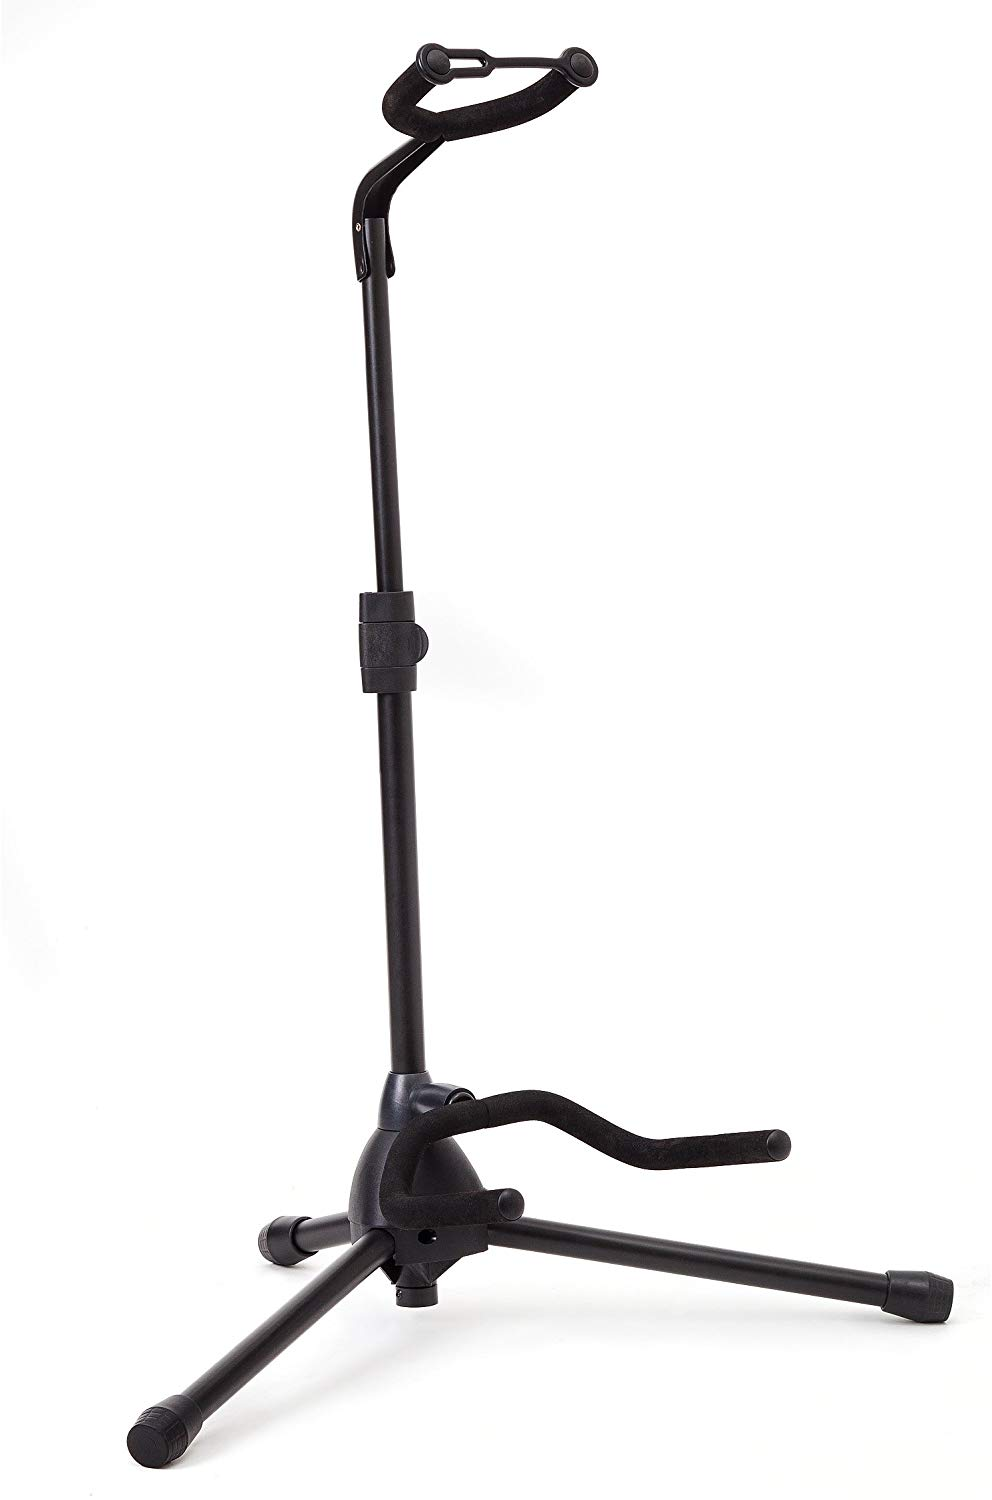 Universal Guitar Stand by Hola! Music - Fits Acoustic, Classical, Electric, Bass Guitars, Mandolins, Banjos, Ukuleles and Other Stringed Instruments - Black